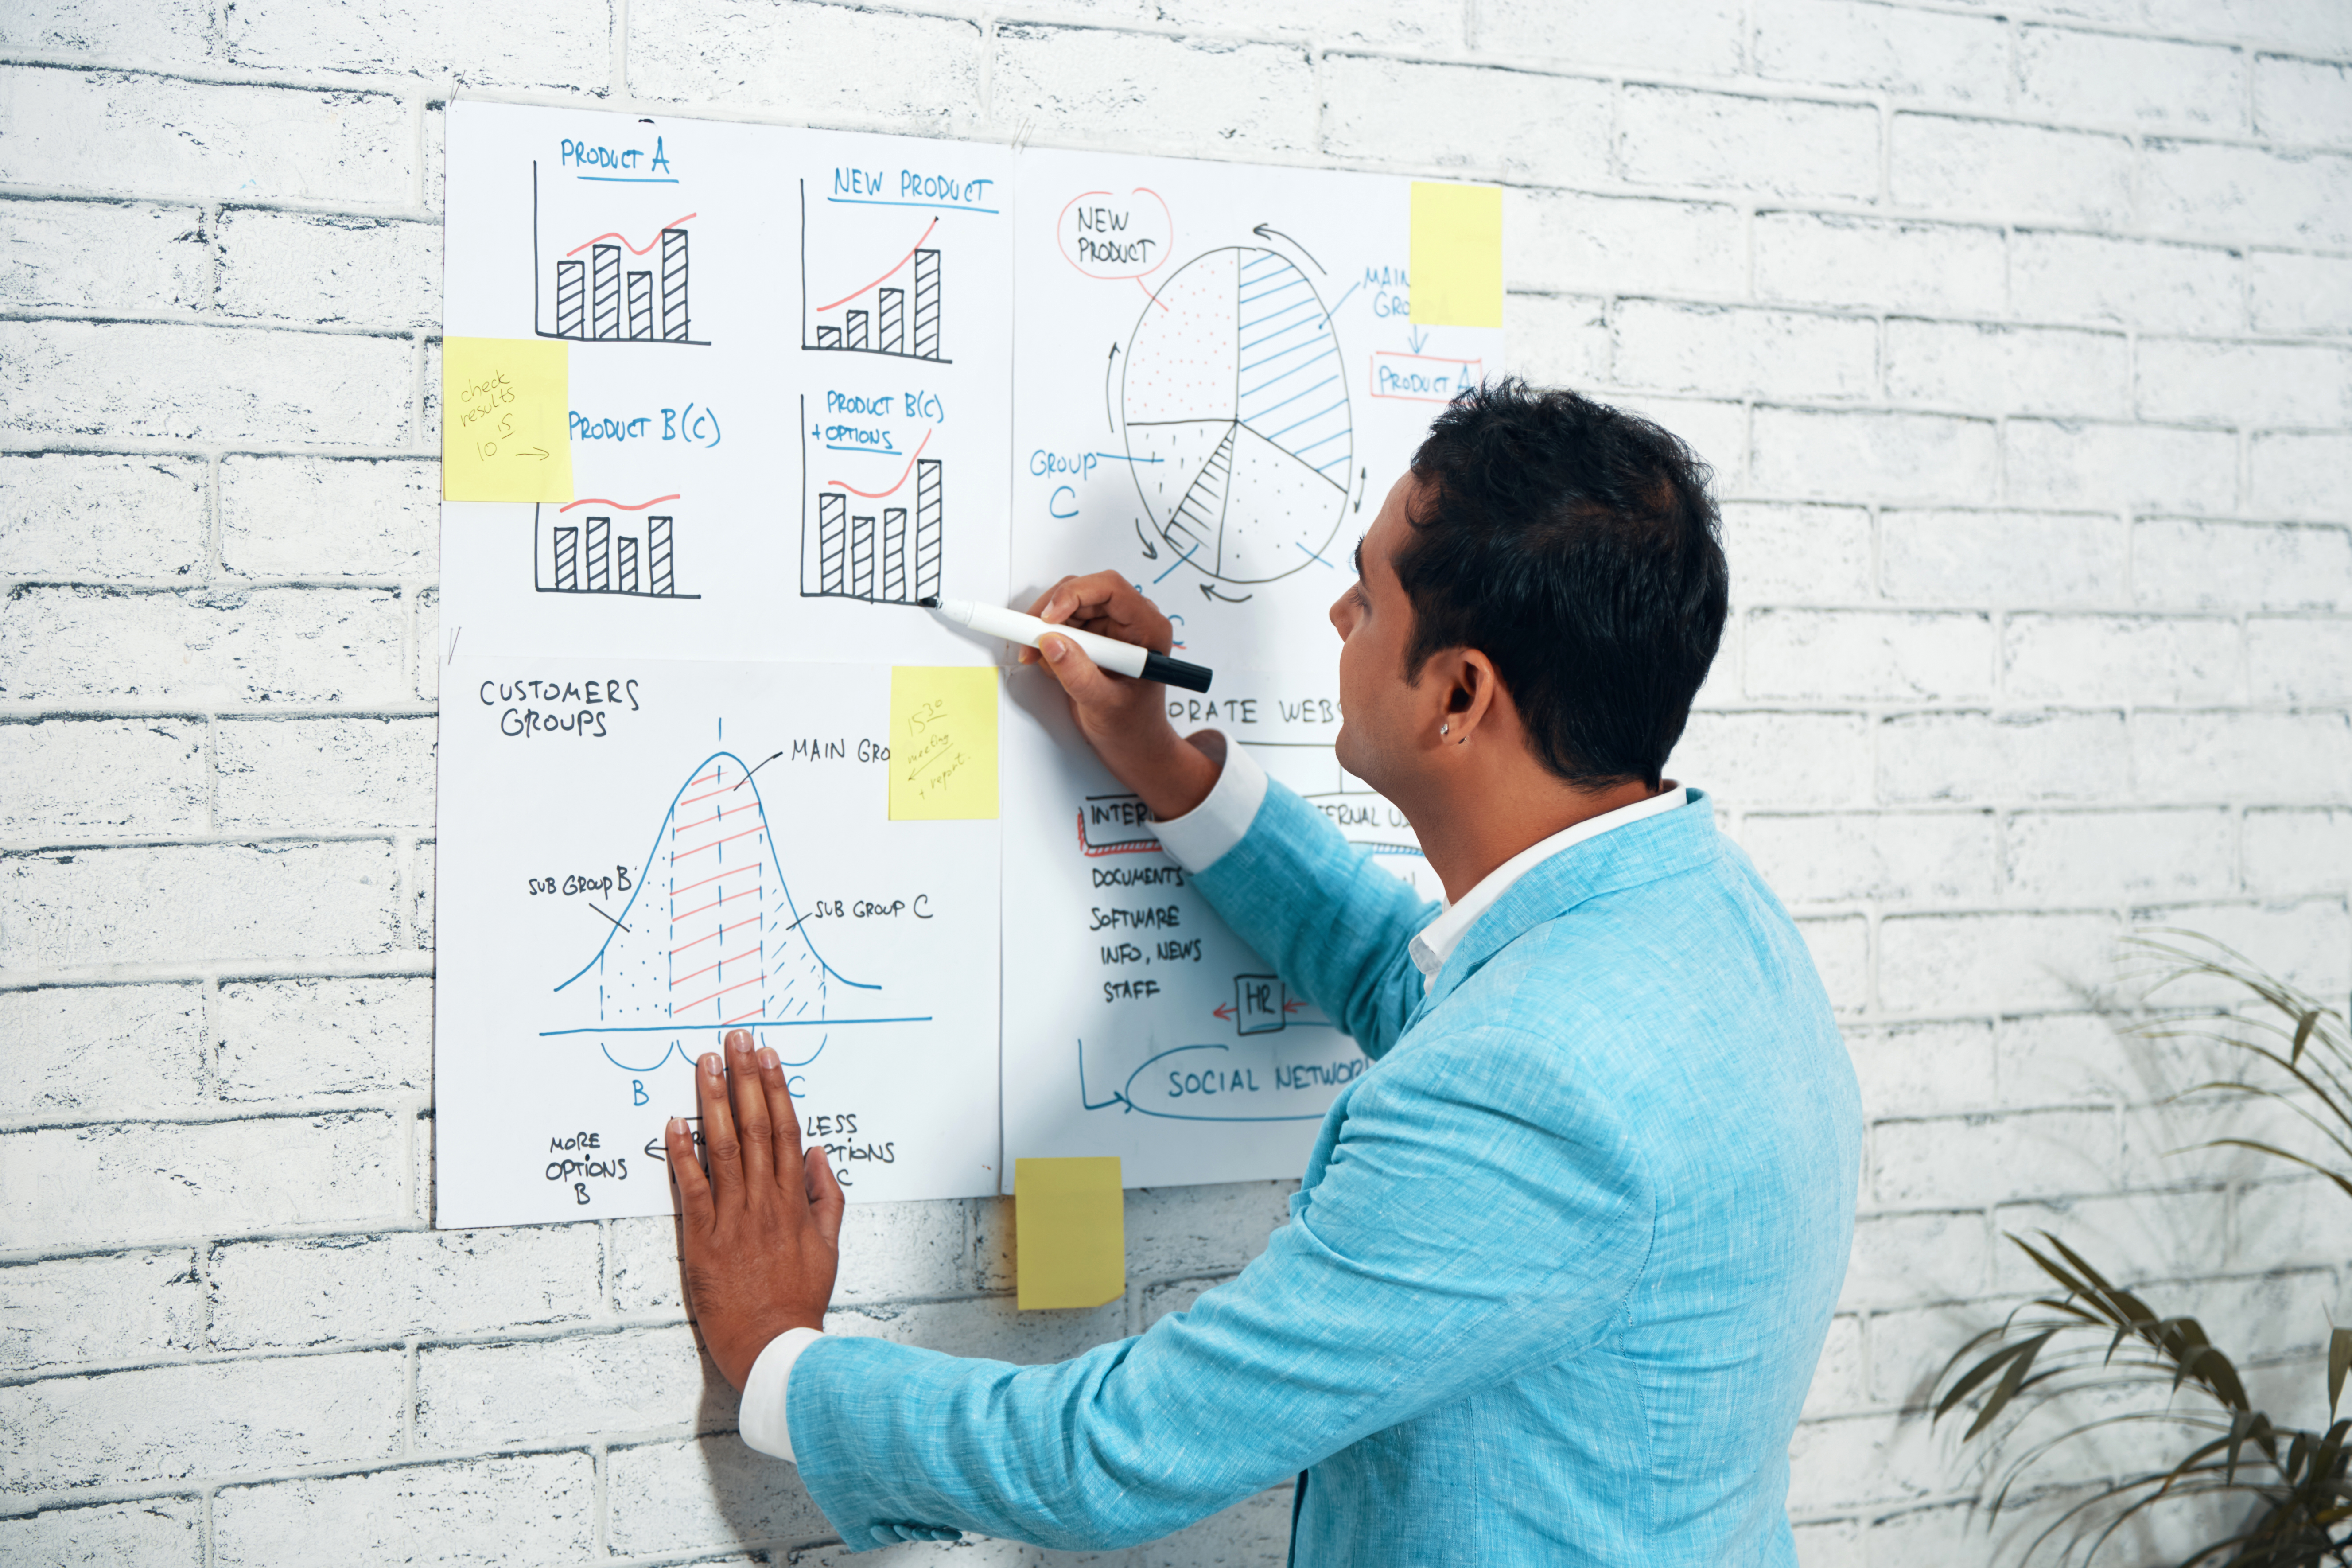 Marketing as Integral Part of Business